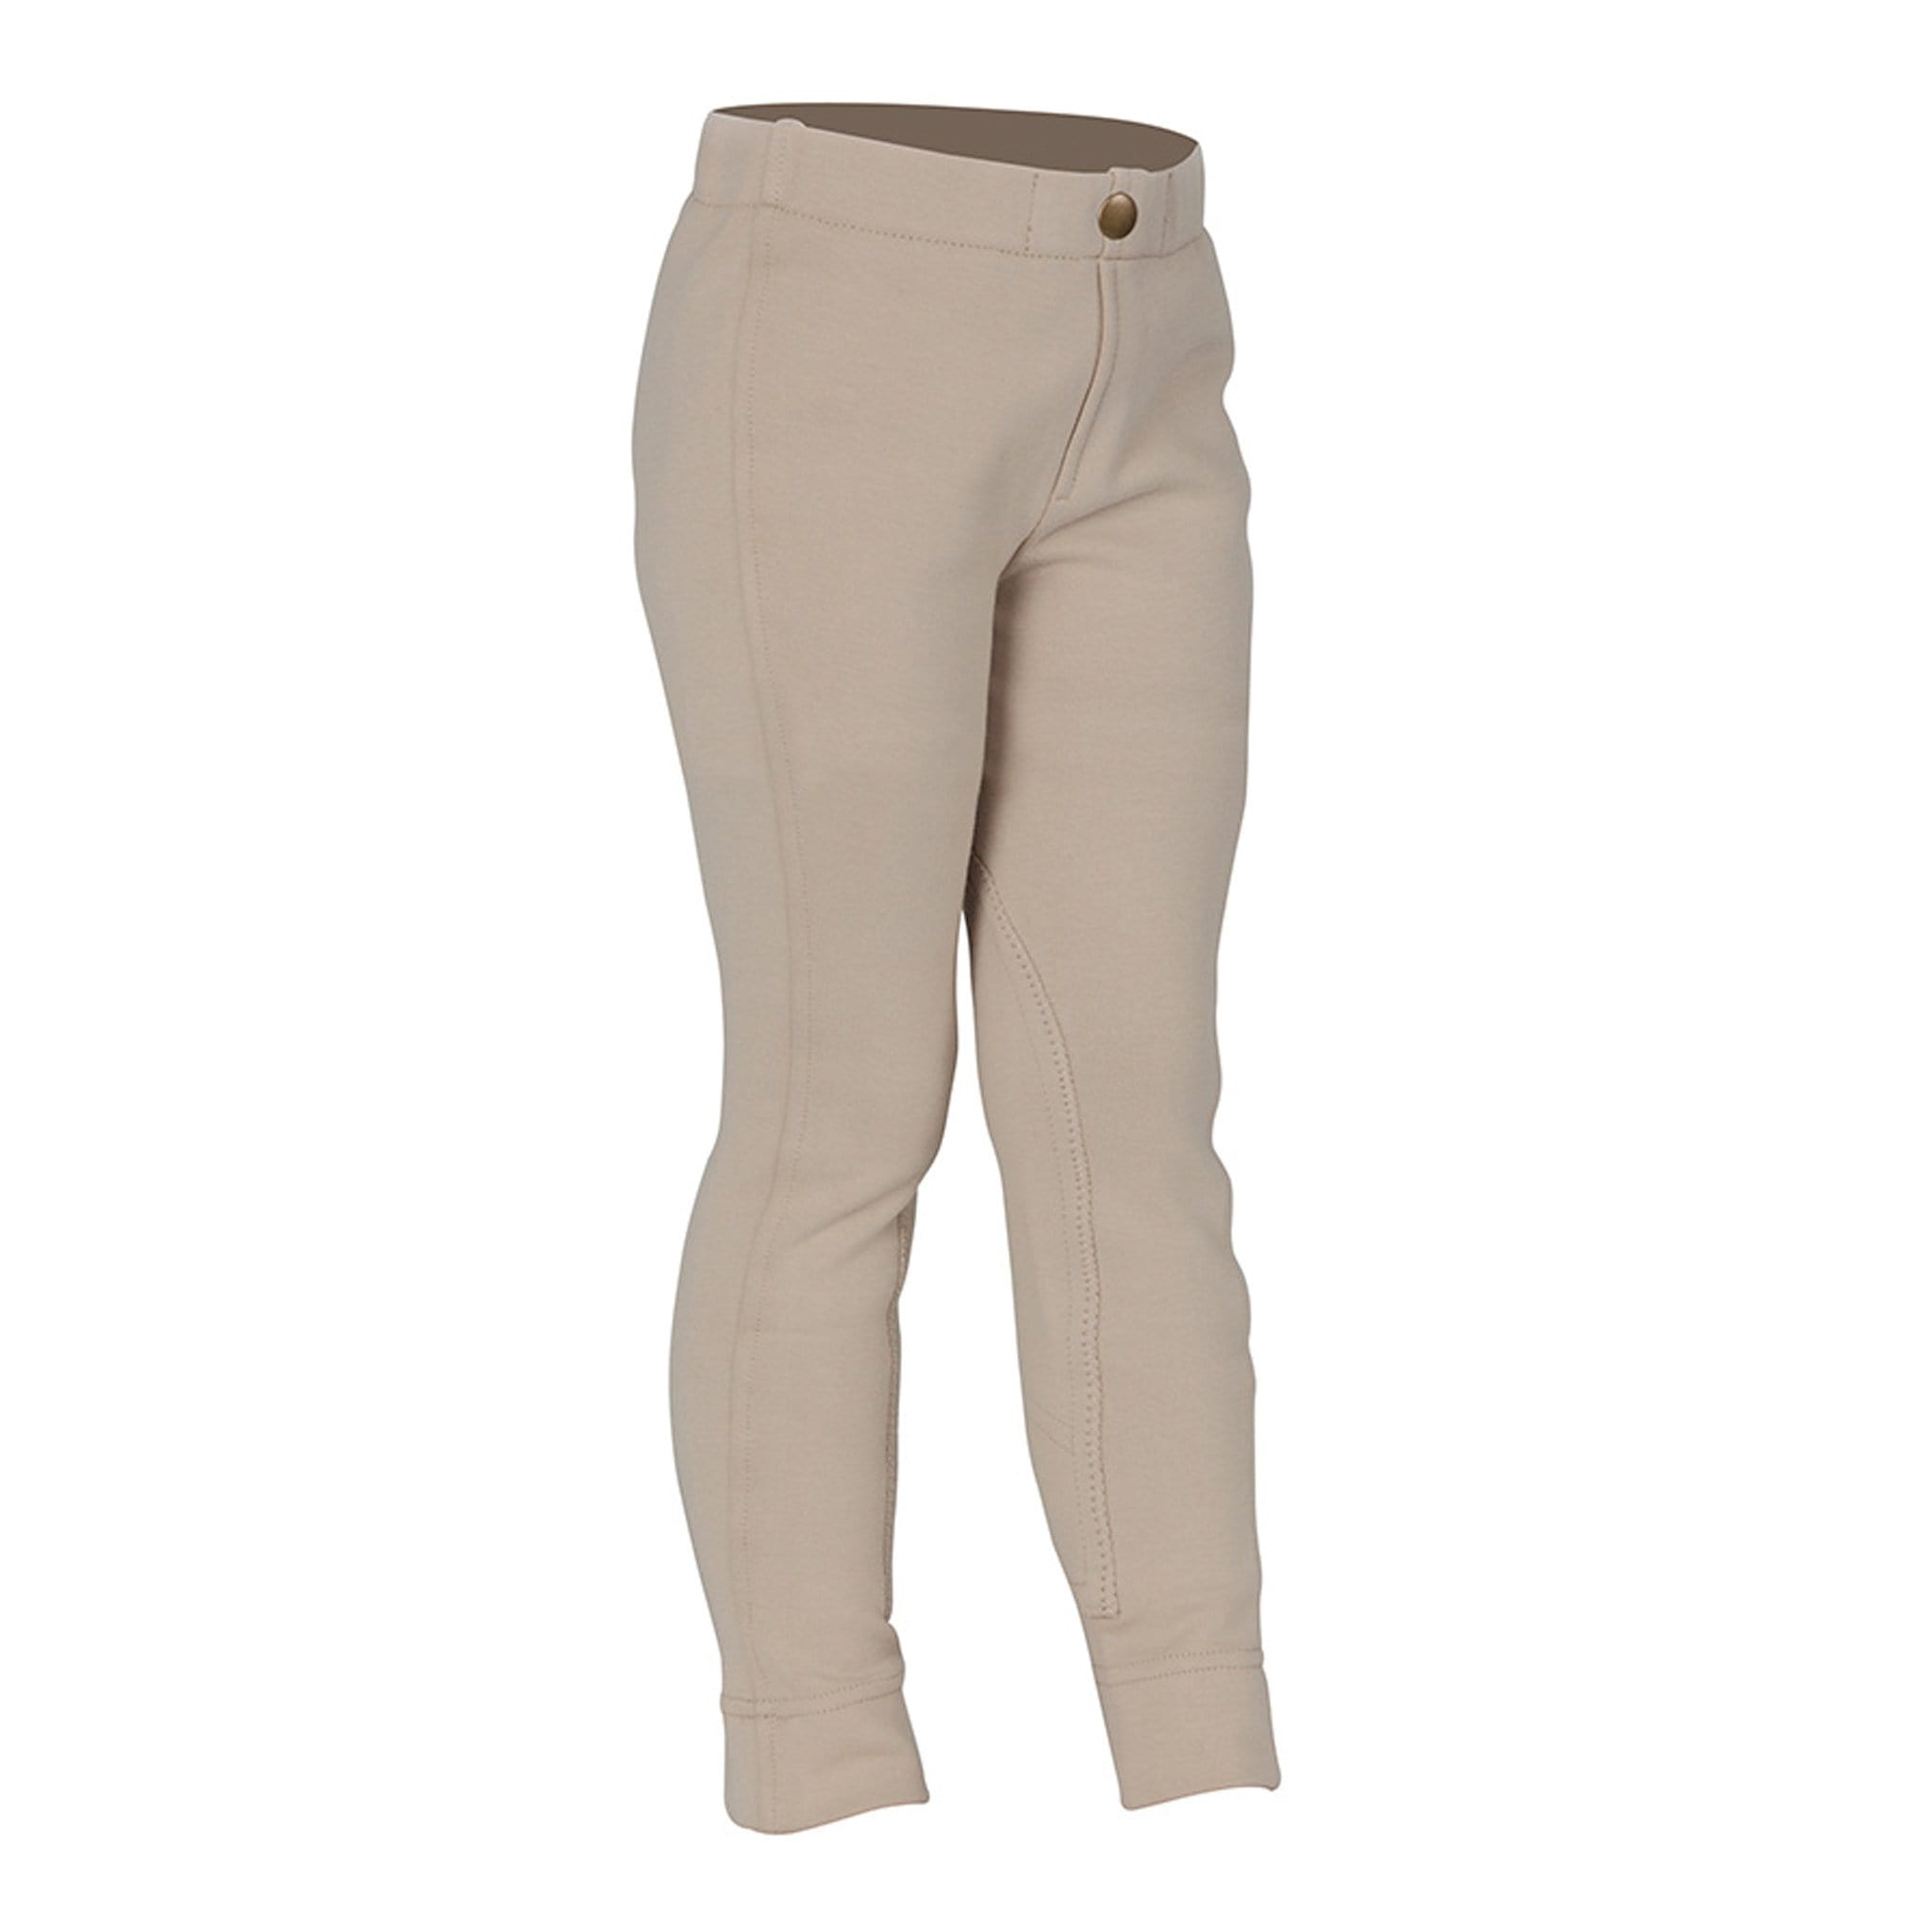 Shires Children's Wessex Pull-On Knee Patch Jodhpurs Beige 8705J.